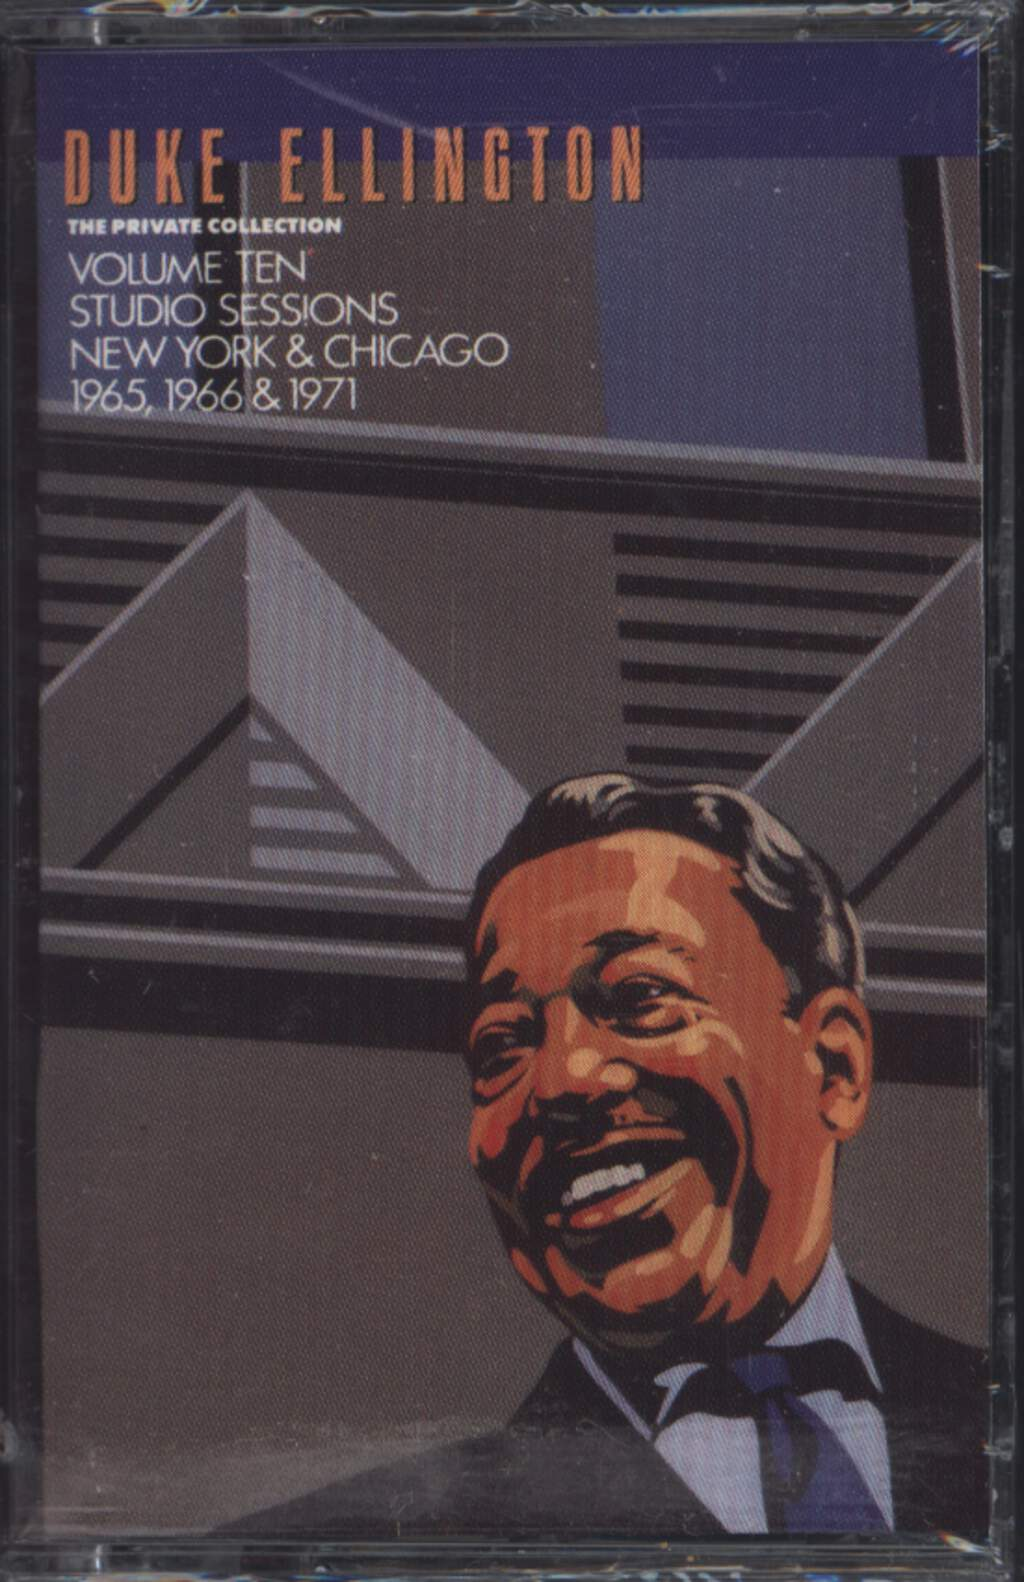 Duke Ellington: The Private Collection:  Volume 10, Studio Sessions, Compact Cassette